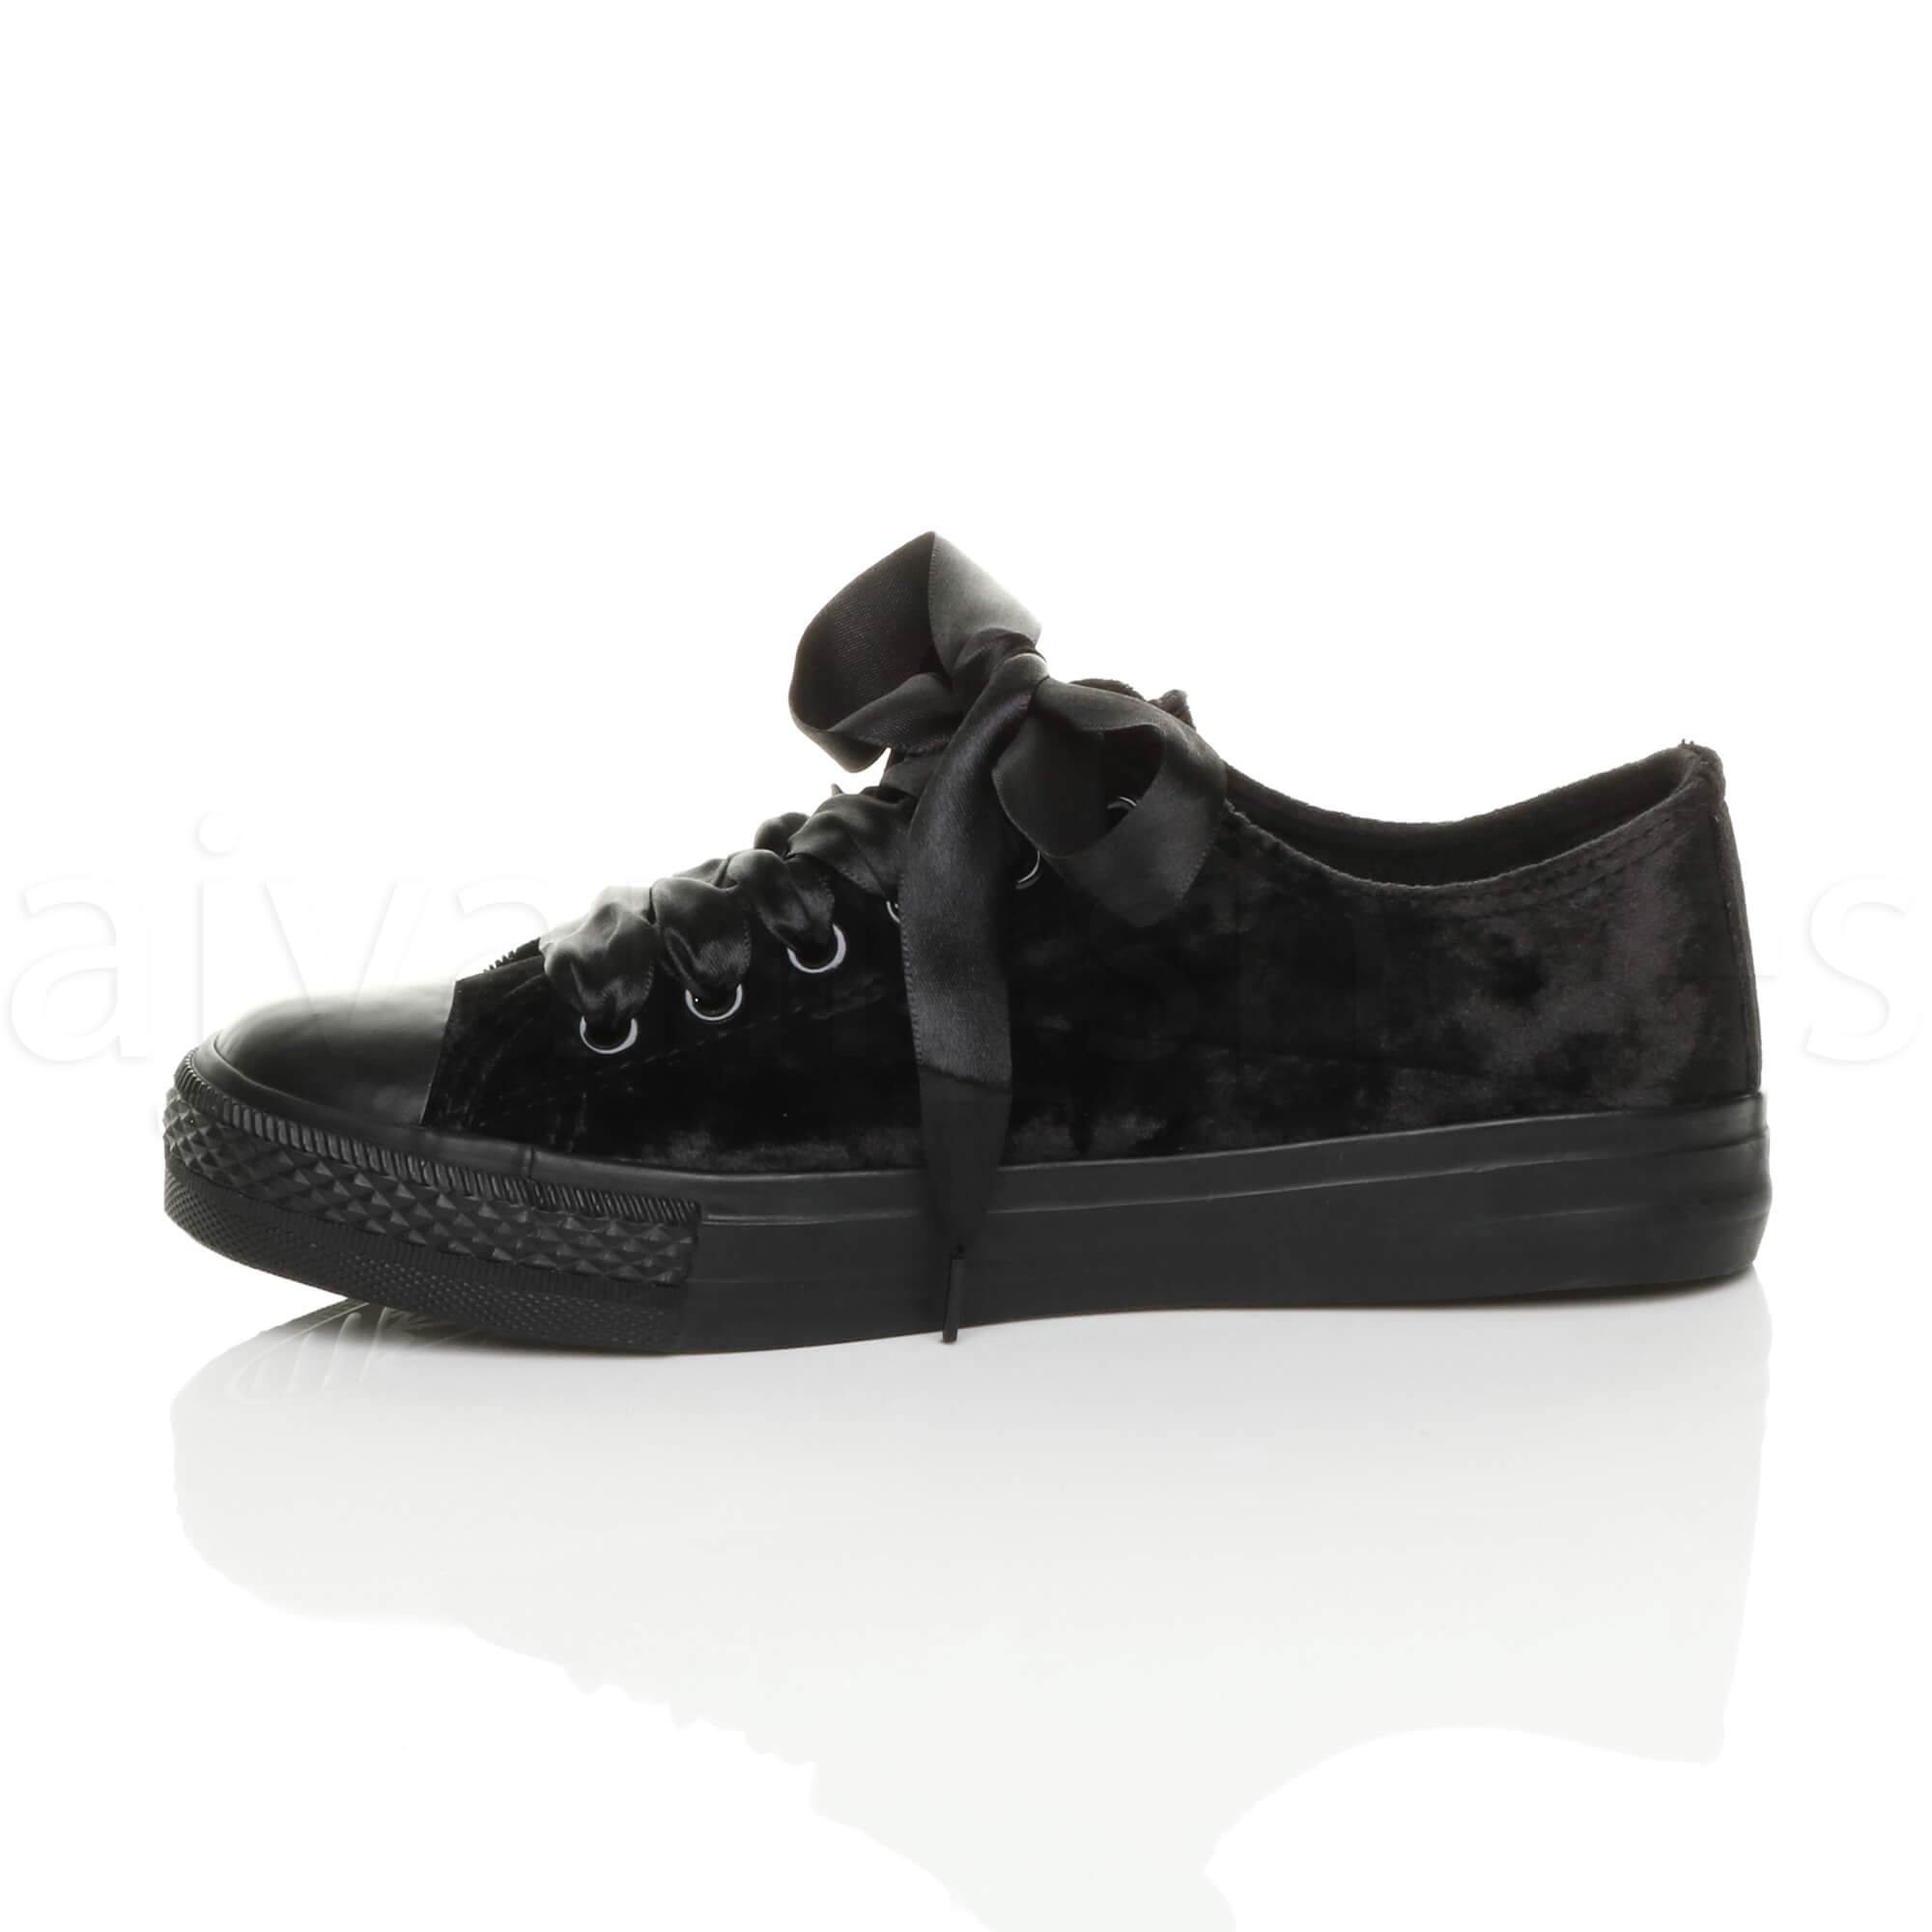 WOMENS-LADIES-RIBBON-LACE-UP-VELVET-BASEBALL-LOW-TOP-PUMPS-TRAINERS-SHOES-SIZE